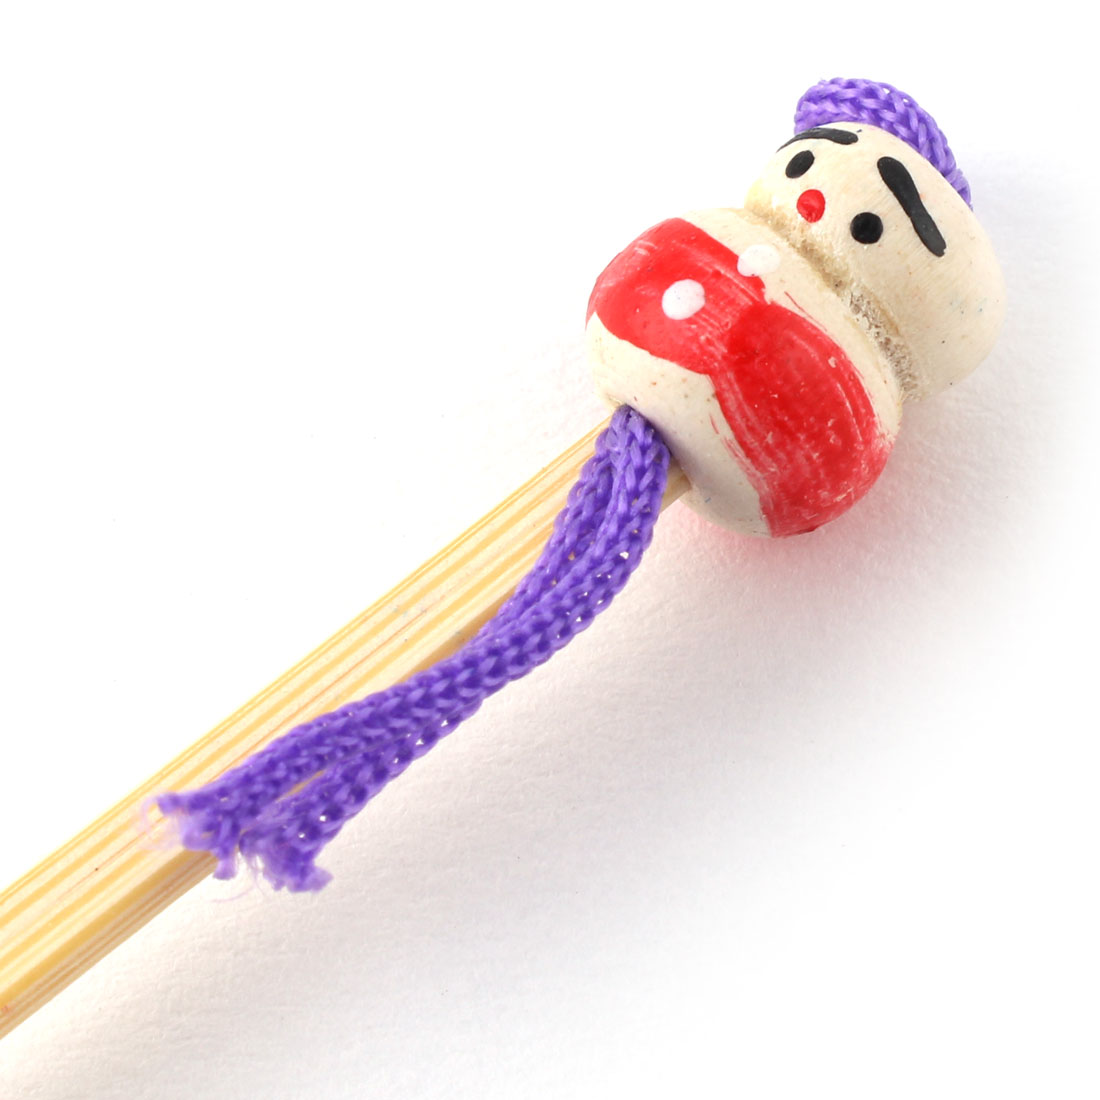 Household Bamboo Japanese Doll Decor Ear Pick Earwax Remove Beige 20 Pcs - image 1 of 4